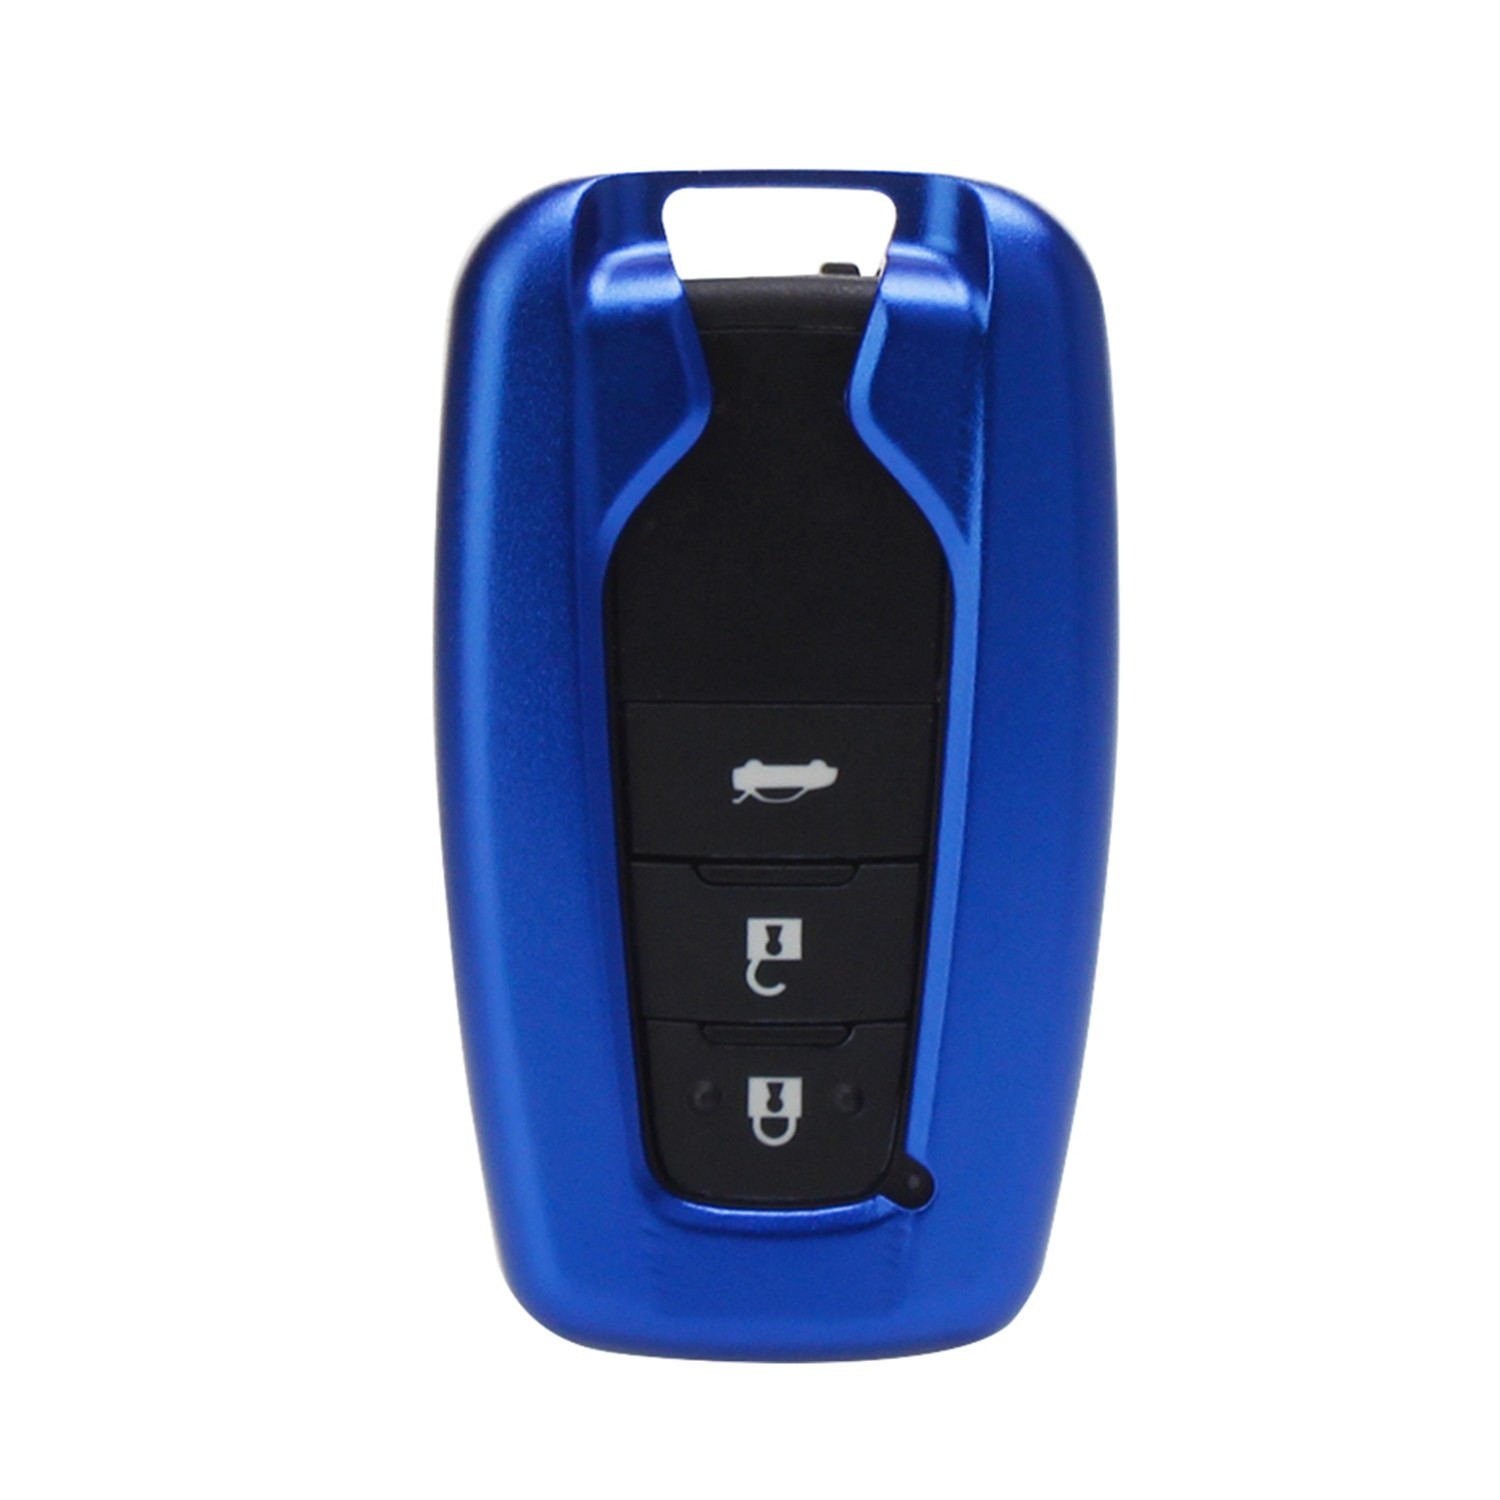 only for Keyless go Tukellen for Toyota Key Fob Cover with Keychain Special Soft TPU Key Case Protector Compatible with 2018-2020 Toyota RAV4 Camry Avalon C-HR Prius Corolla -Blue